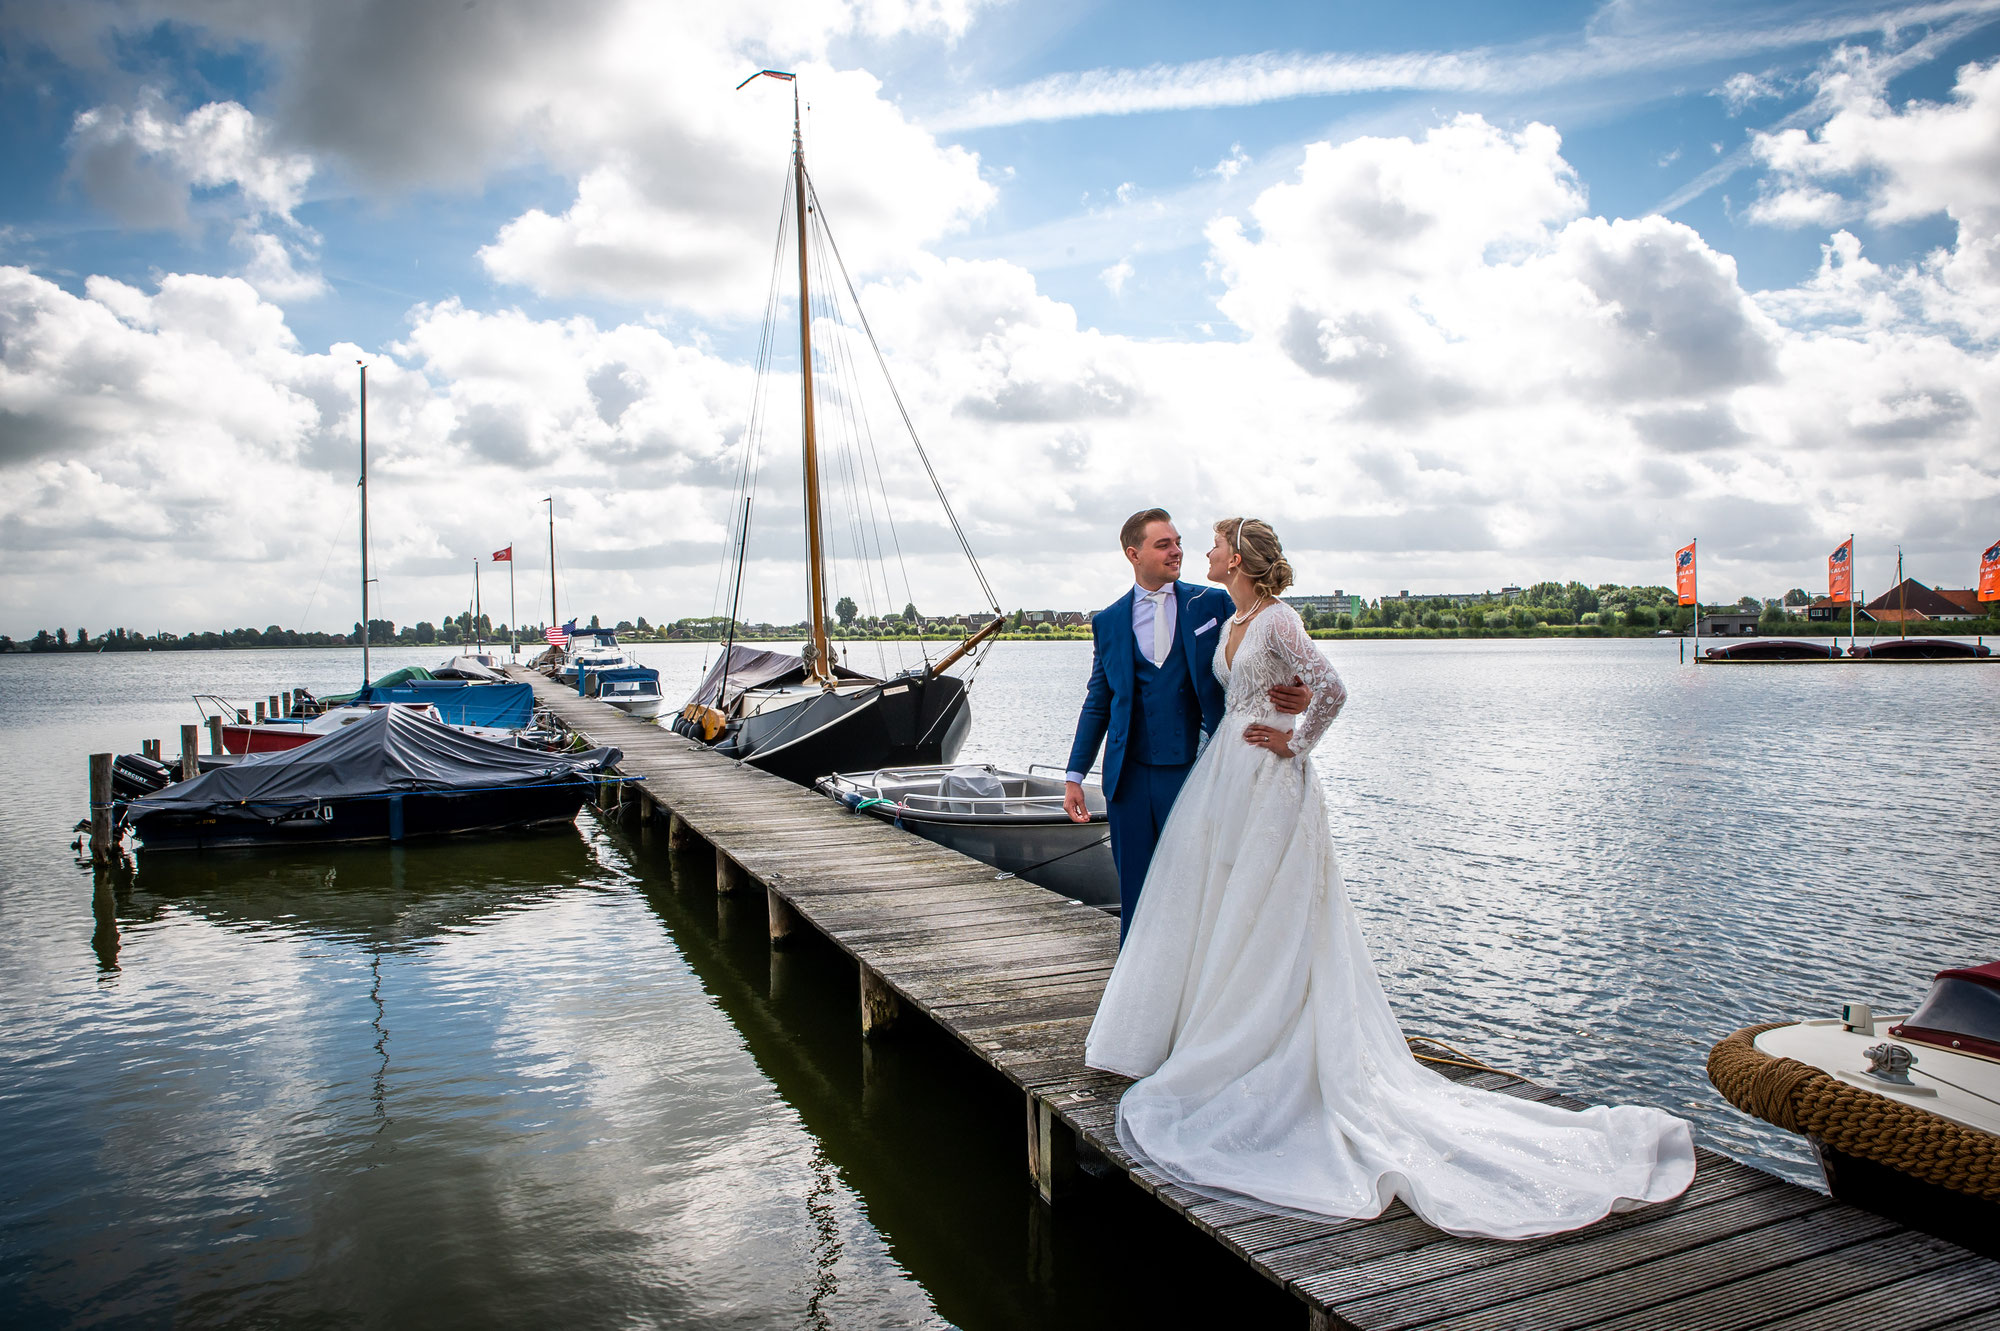 Corali Photography, trouwfotografie in Wormerland